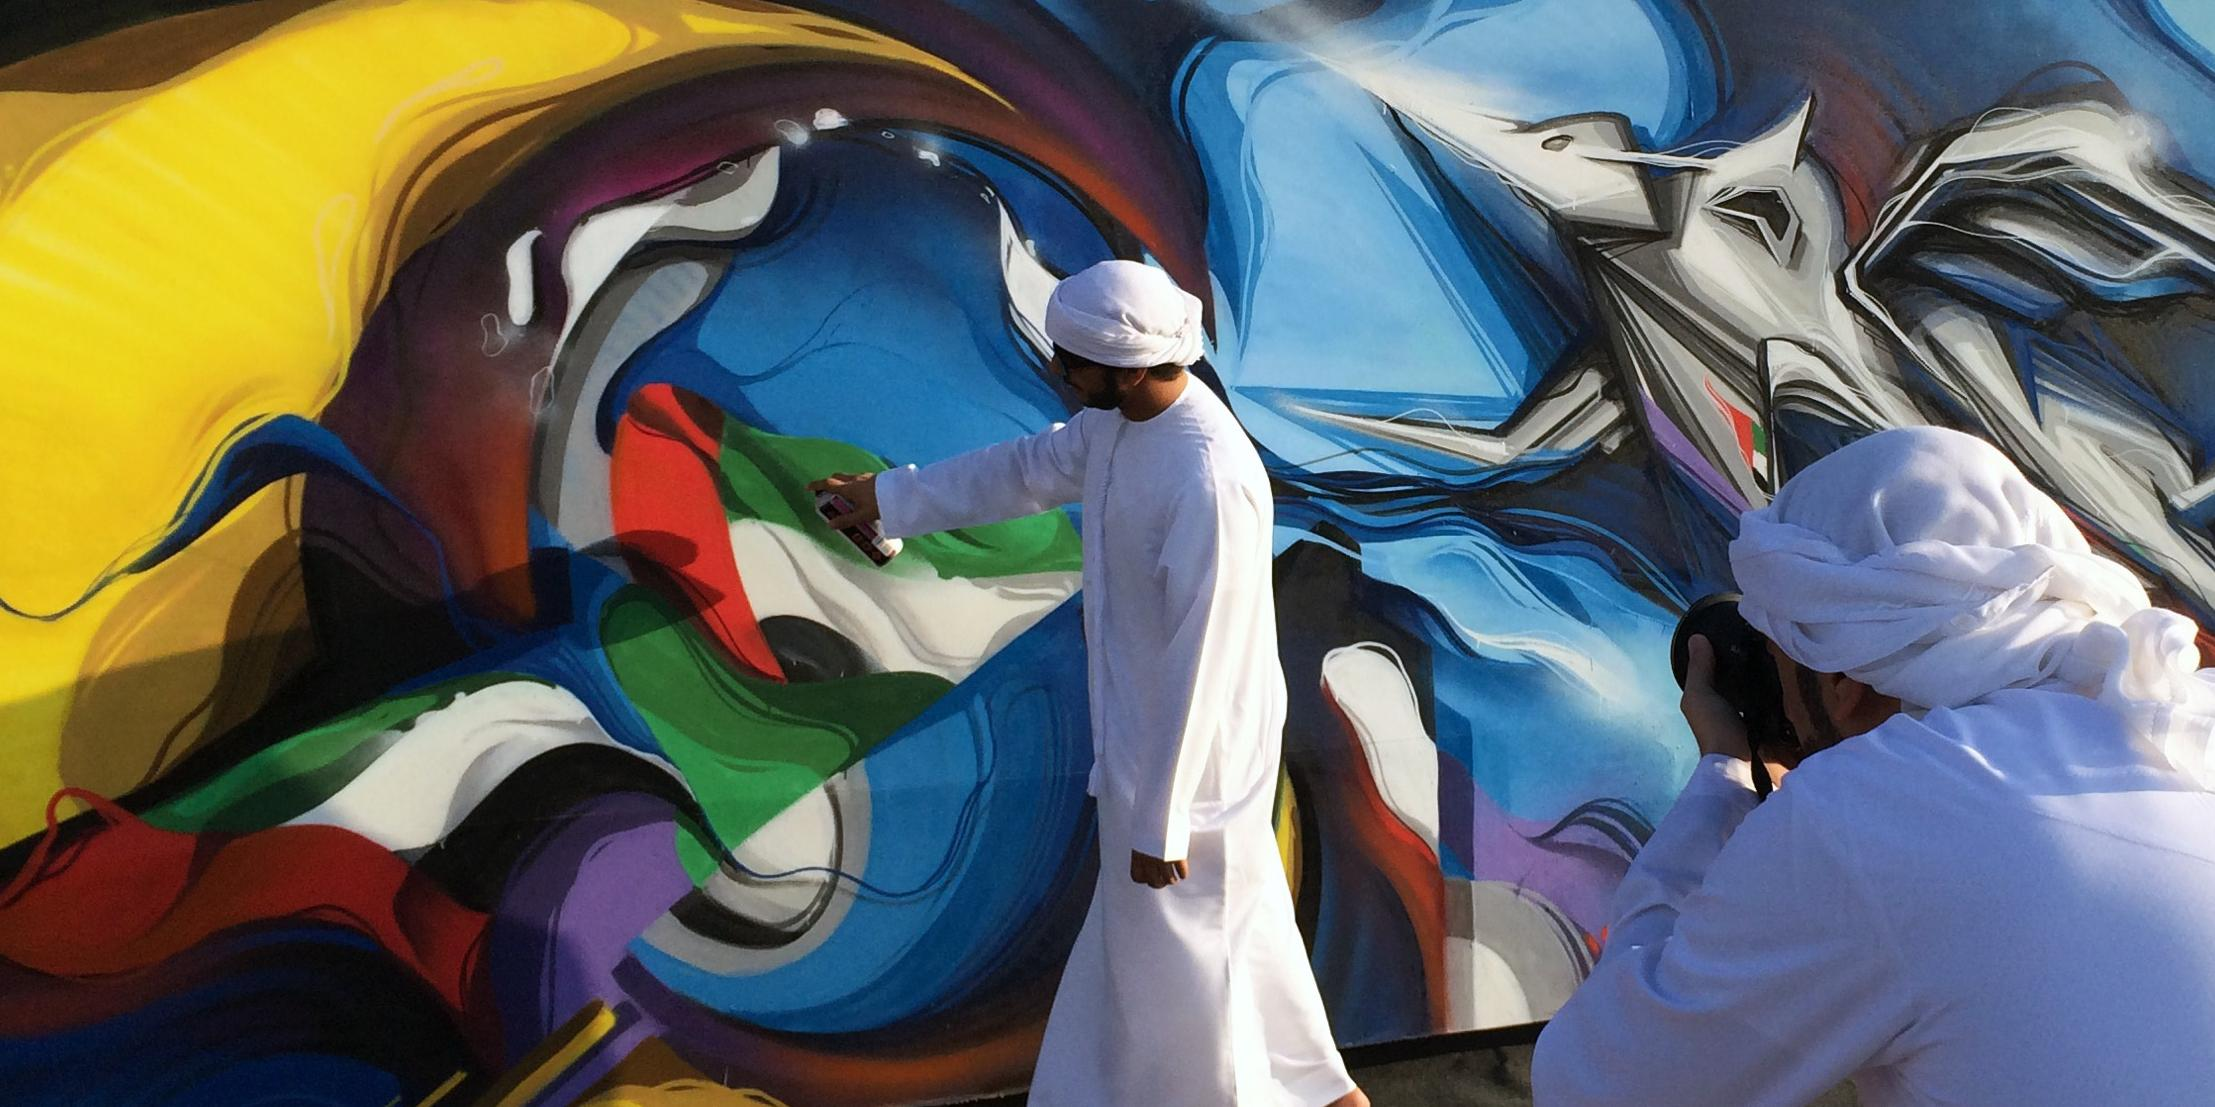 A work by Does - Dubai uae ironlak family 3